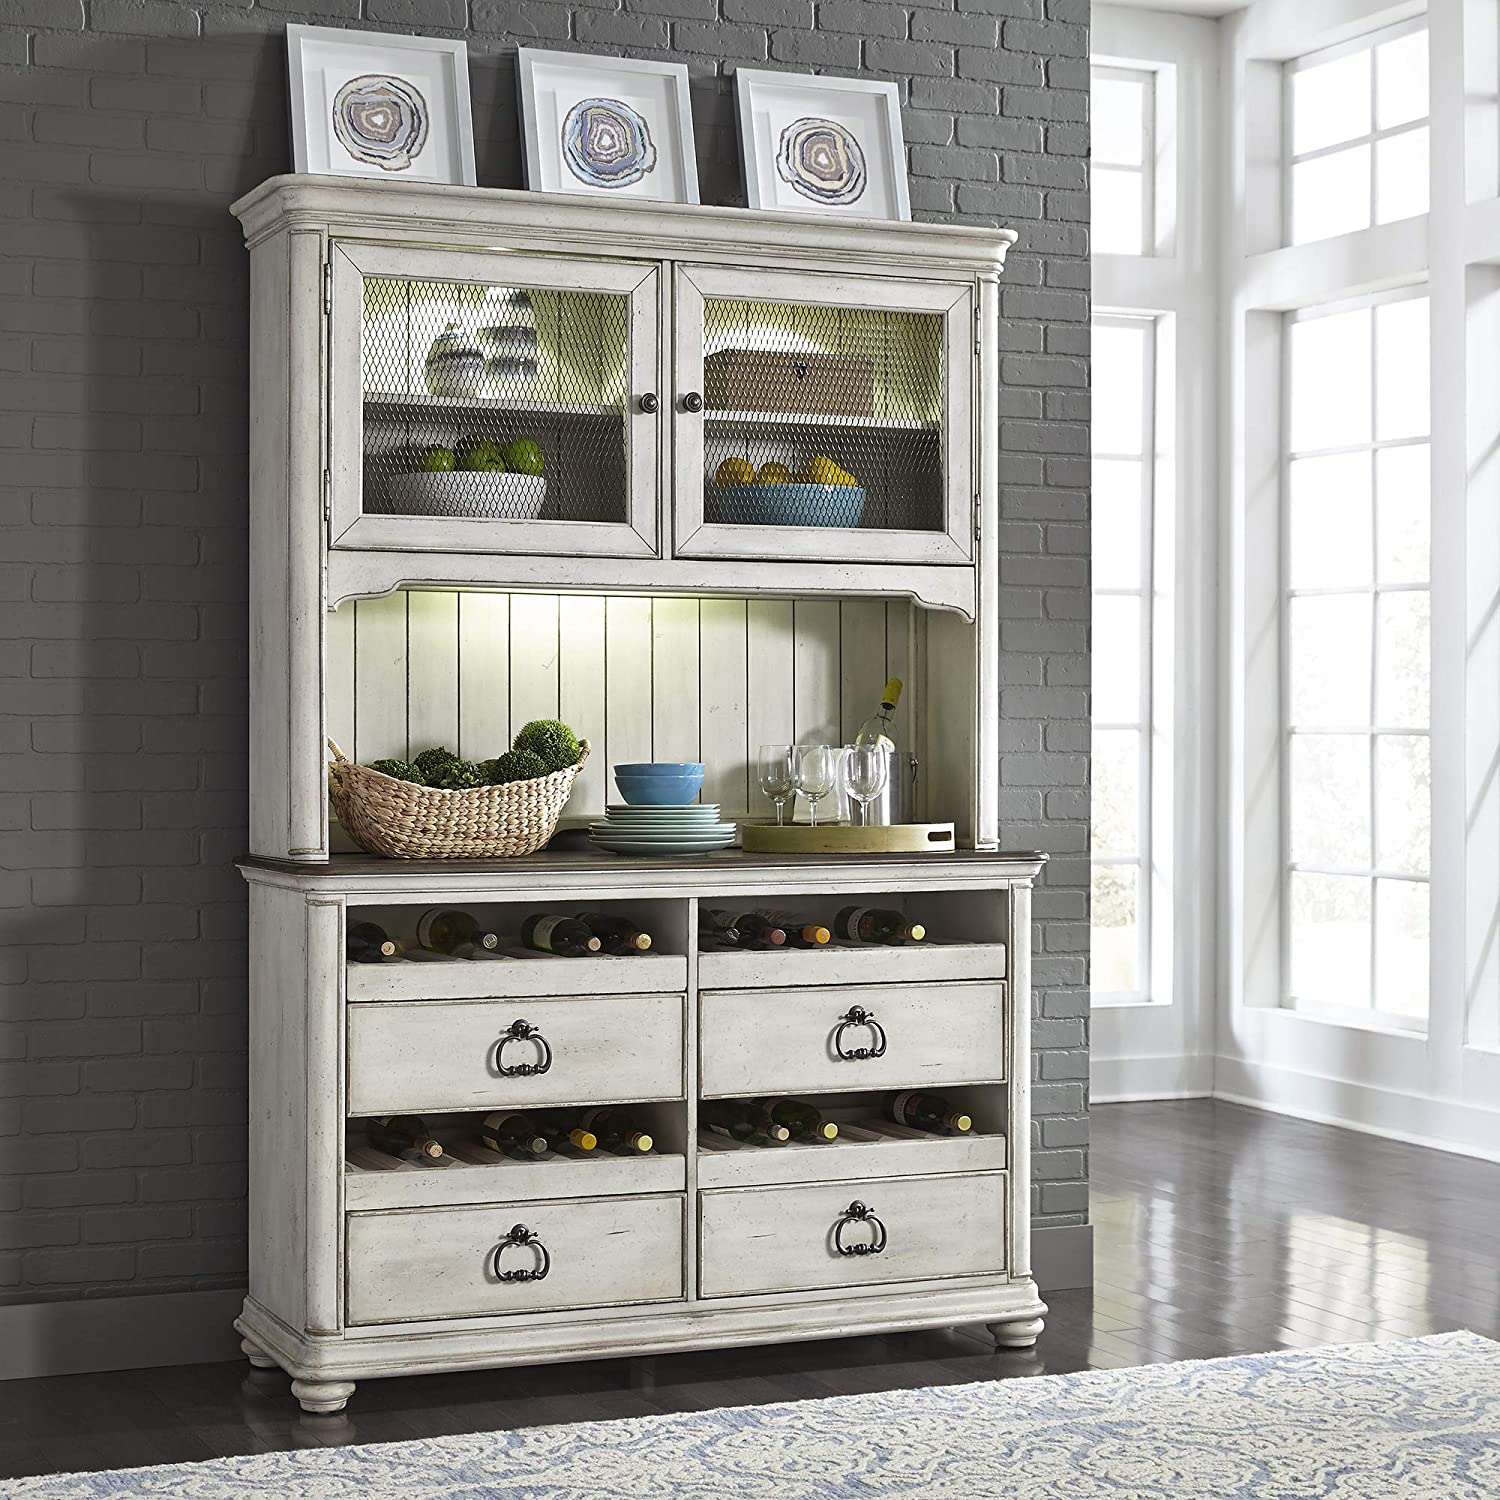 Liberty Furniture Industries Parisian Marketplace Wine Server & Hutch, W57 x D19 x H82, White